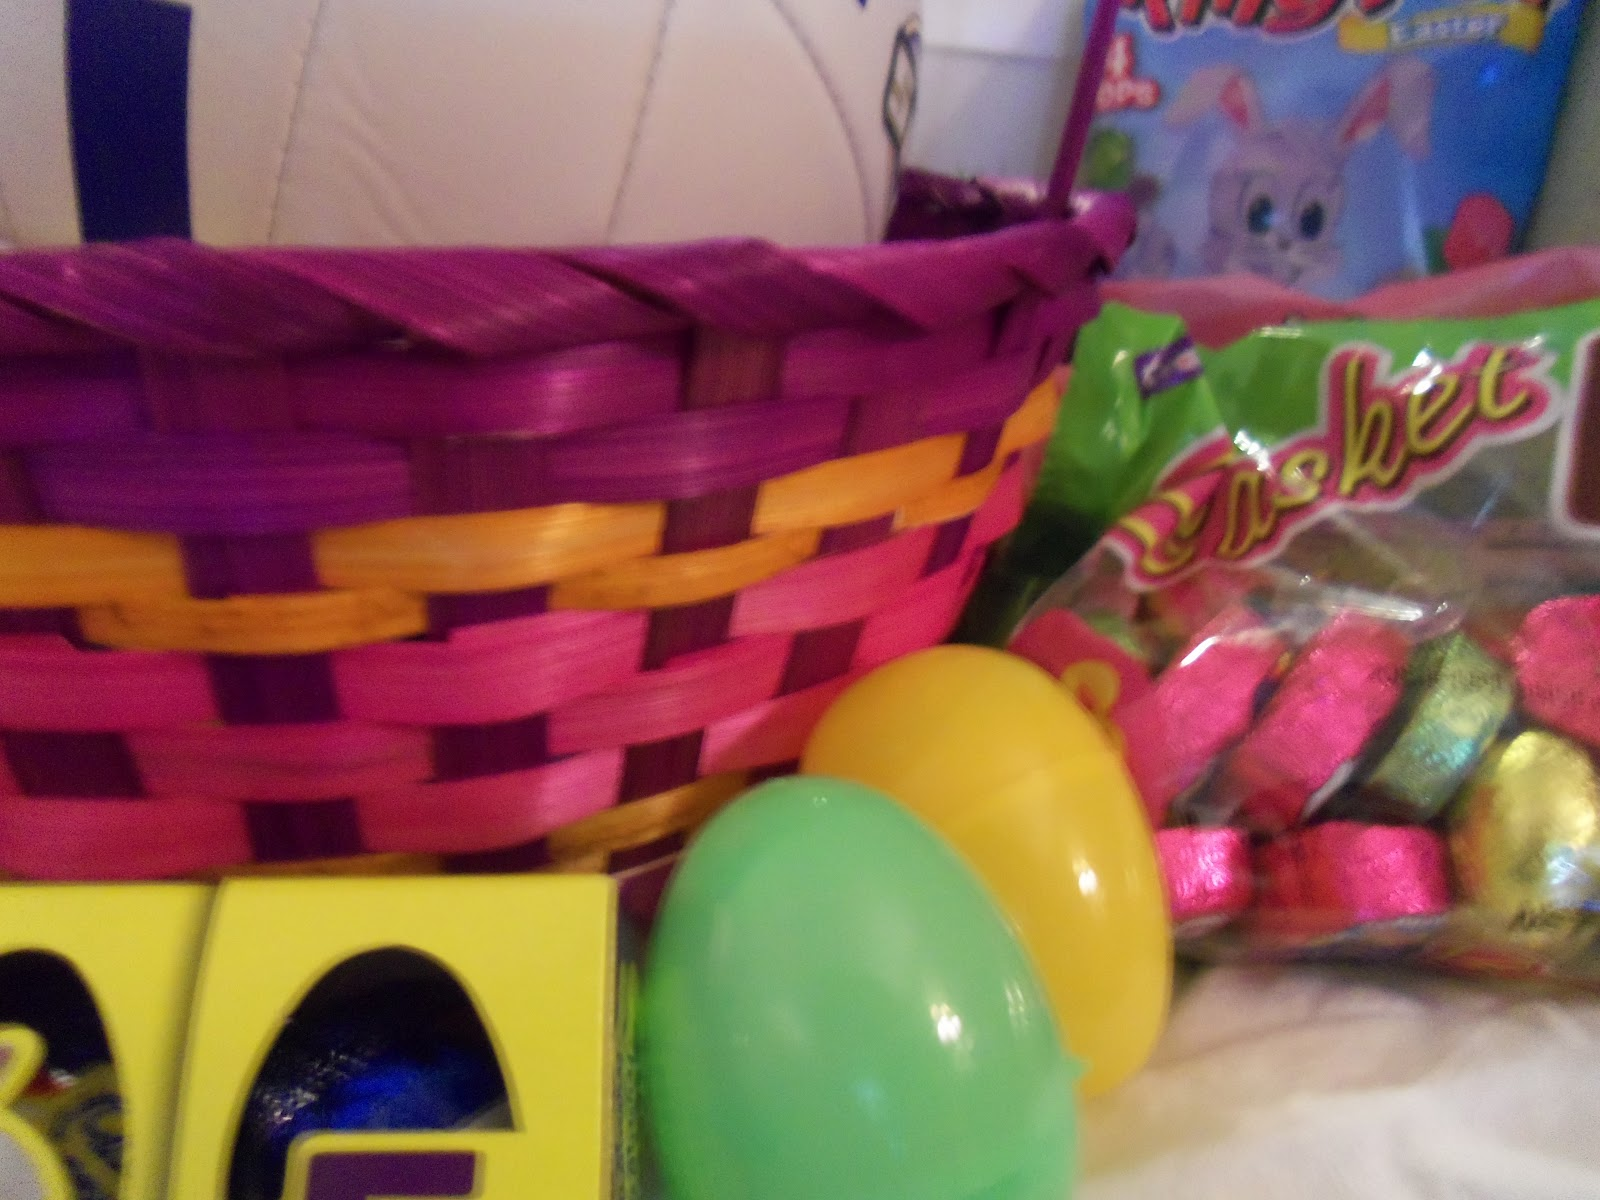 Lille punkin cheap easter basket ideas for large families like most holidays easter can be a drain on the budget by the time we buy new baby easter clothes and make sure the rest of the kids have haircuts negle Choice Image